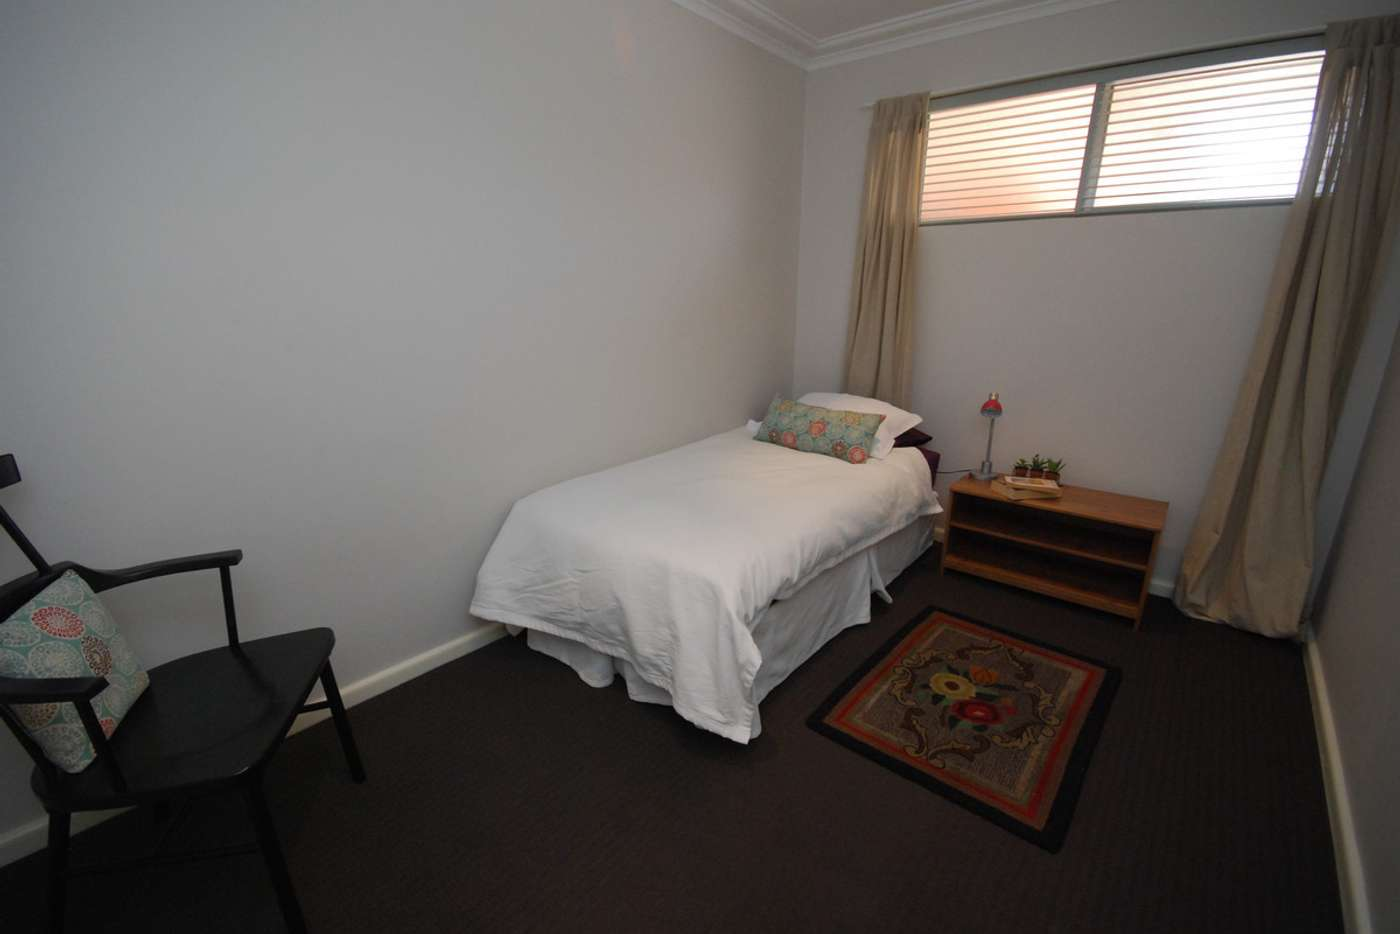 Sixth view of Homely flat listing, 6/37 Ada Street, Katoomba NSW 2780